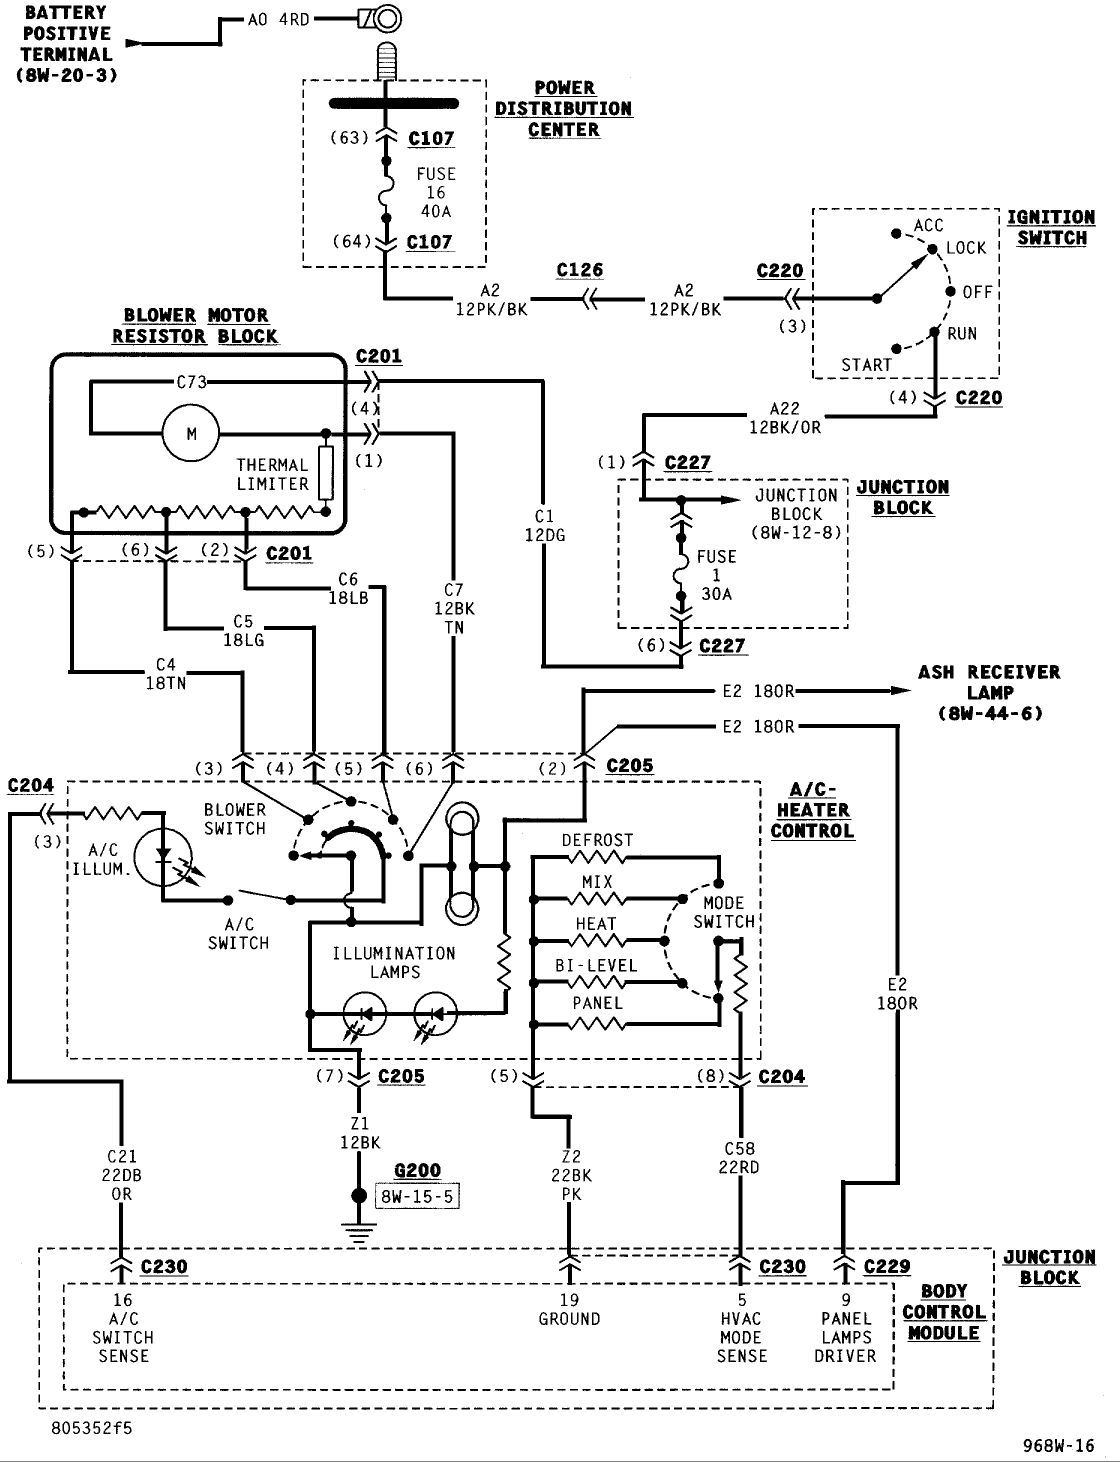 Hvac Mode Door Actuator Is There Any Way Of Diagnosing